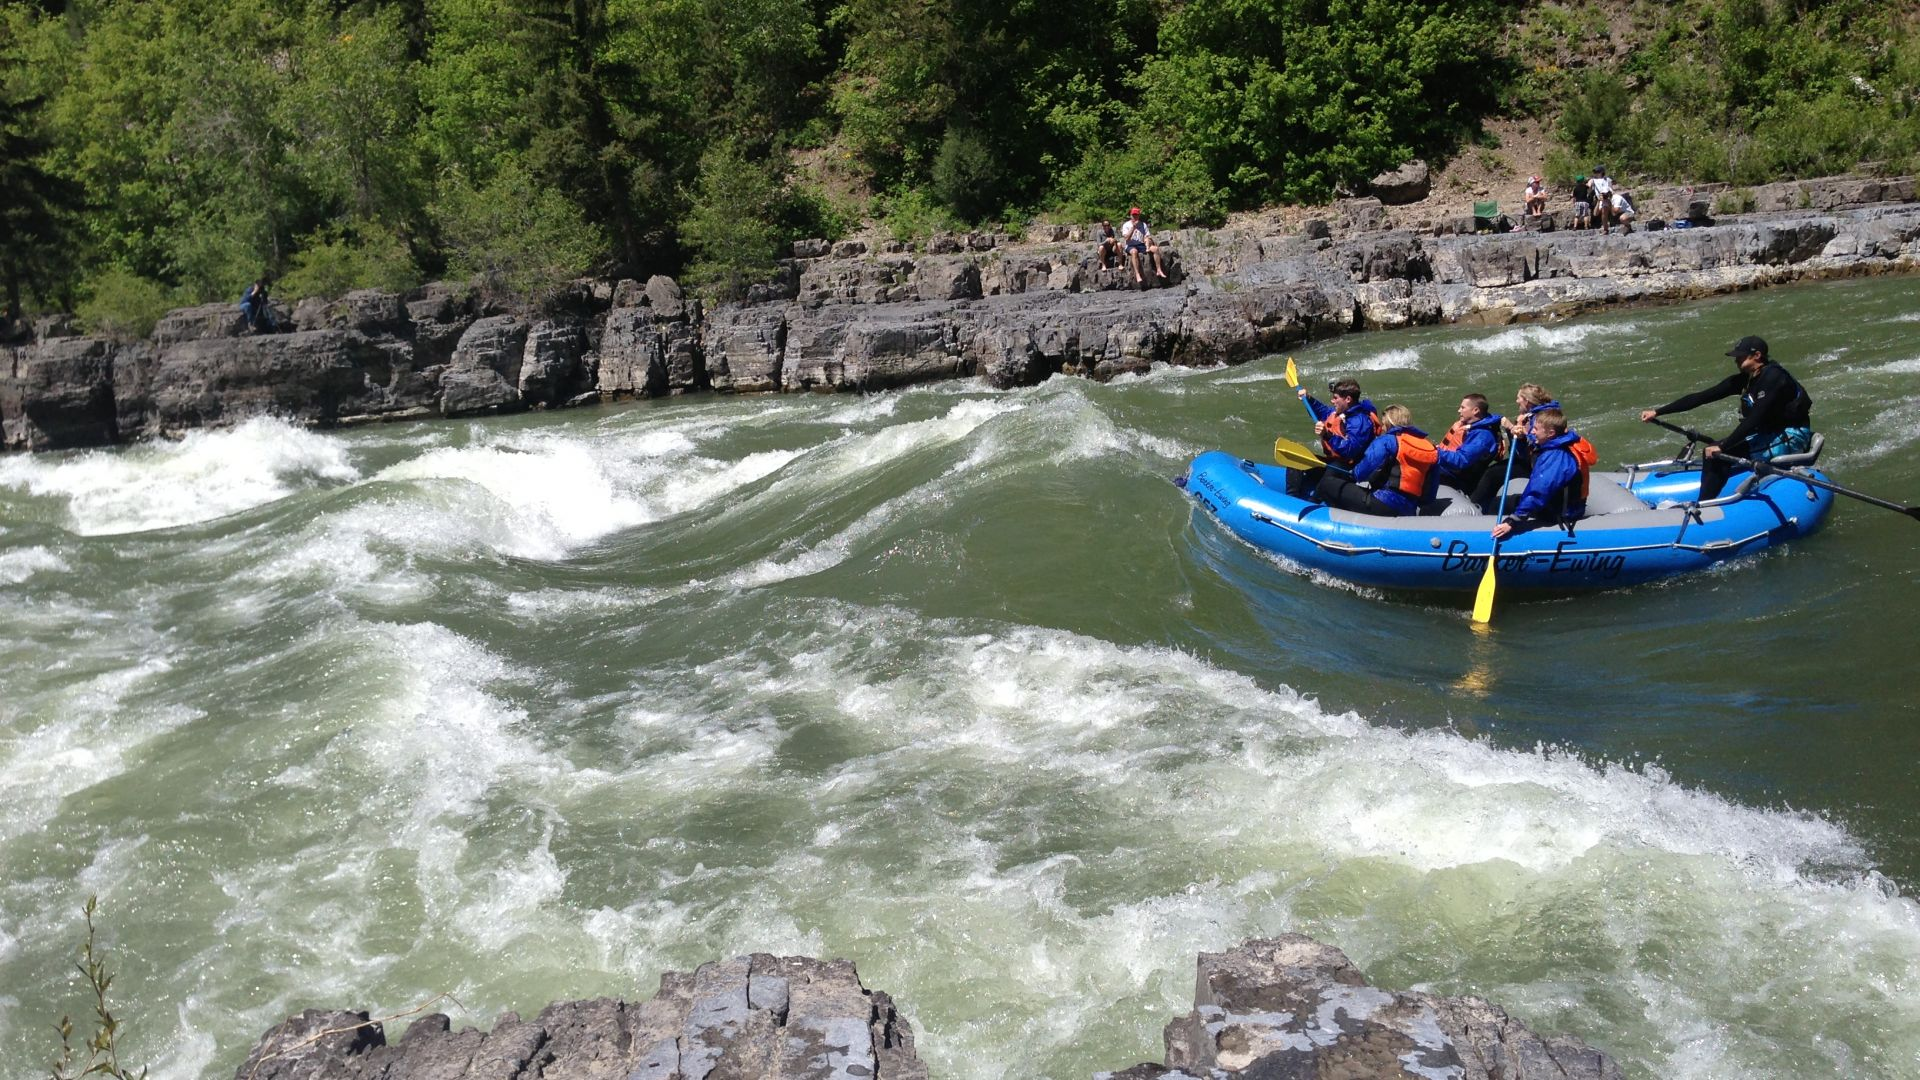 Jackson hole whitewater river rafting guides snake river for Things to do in jackson hole wy